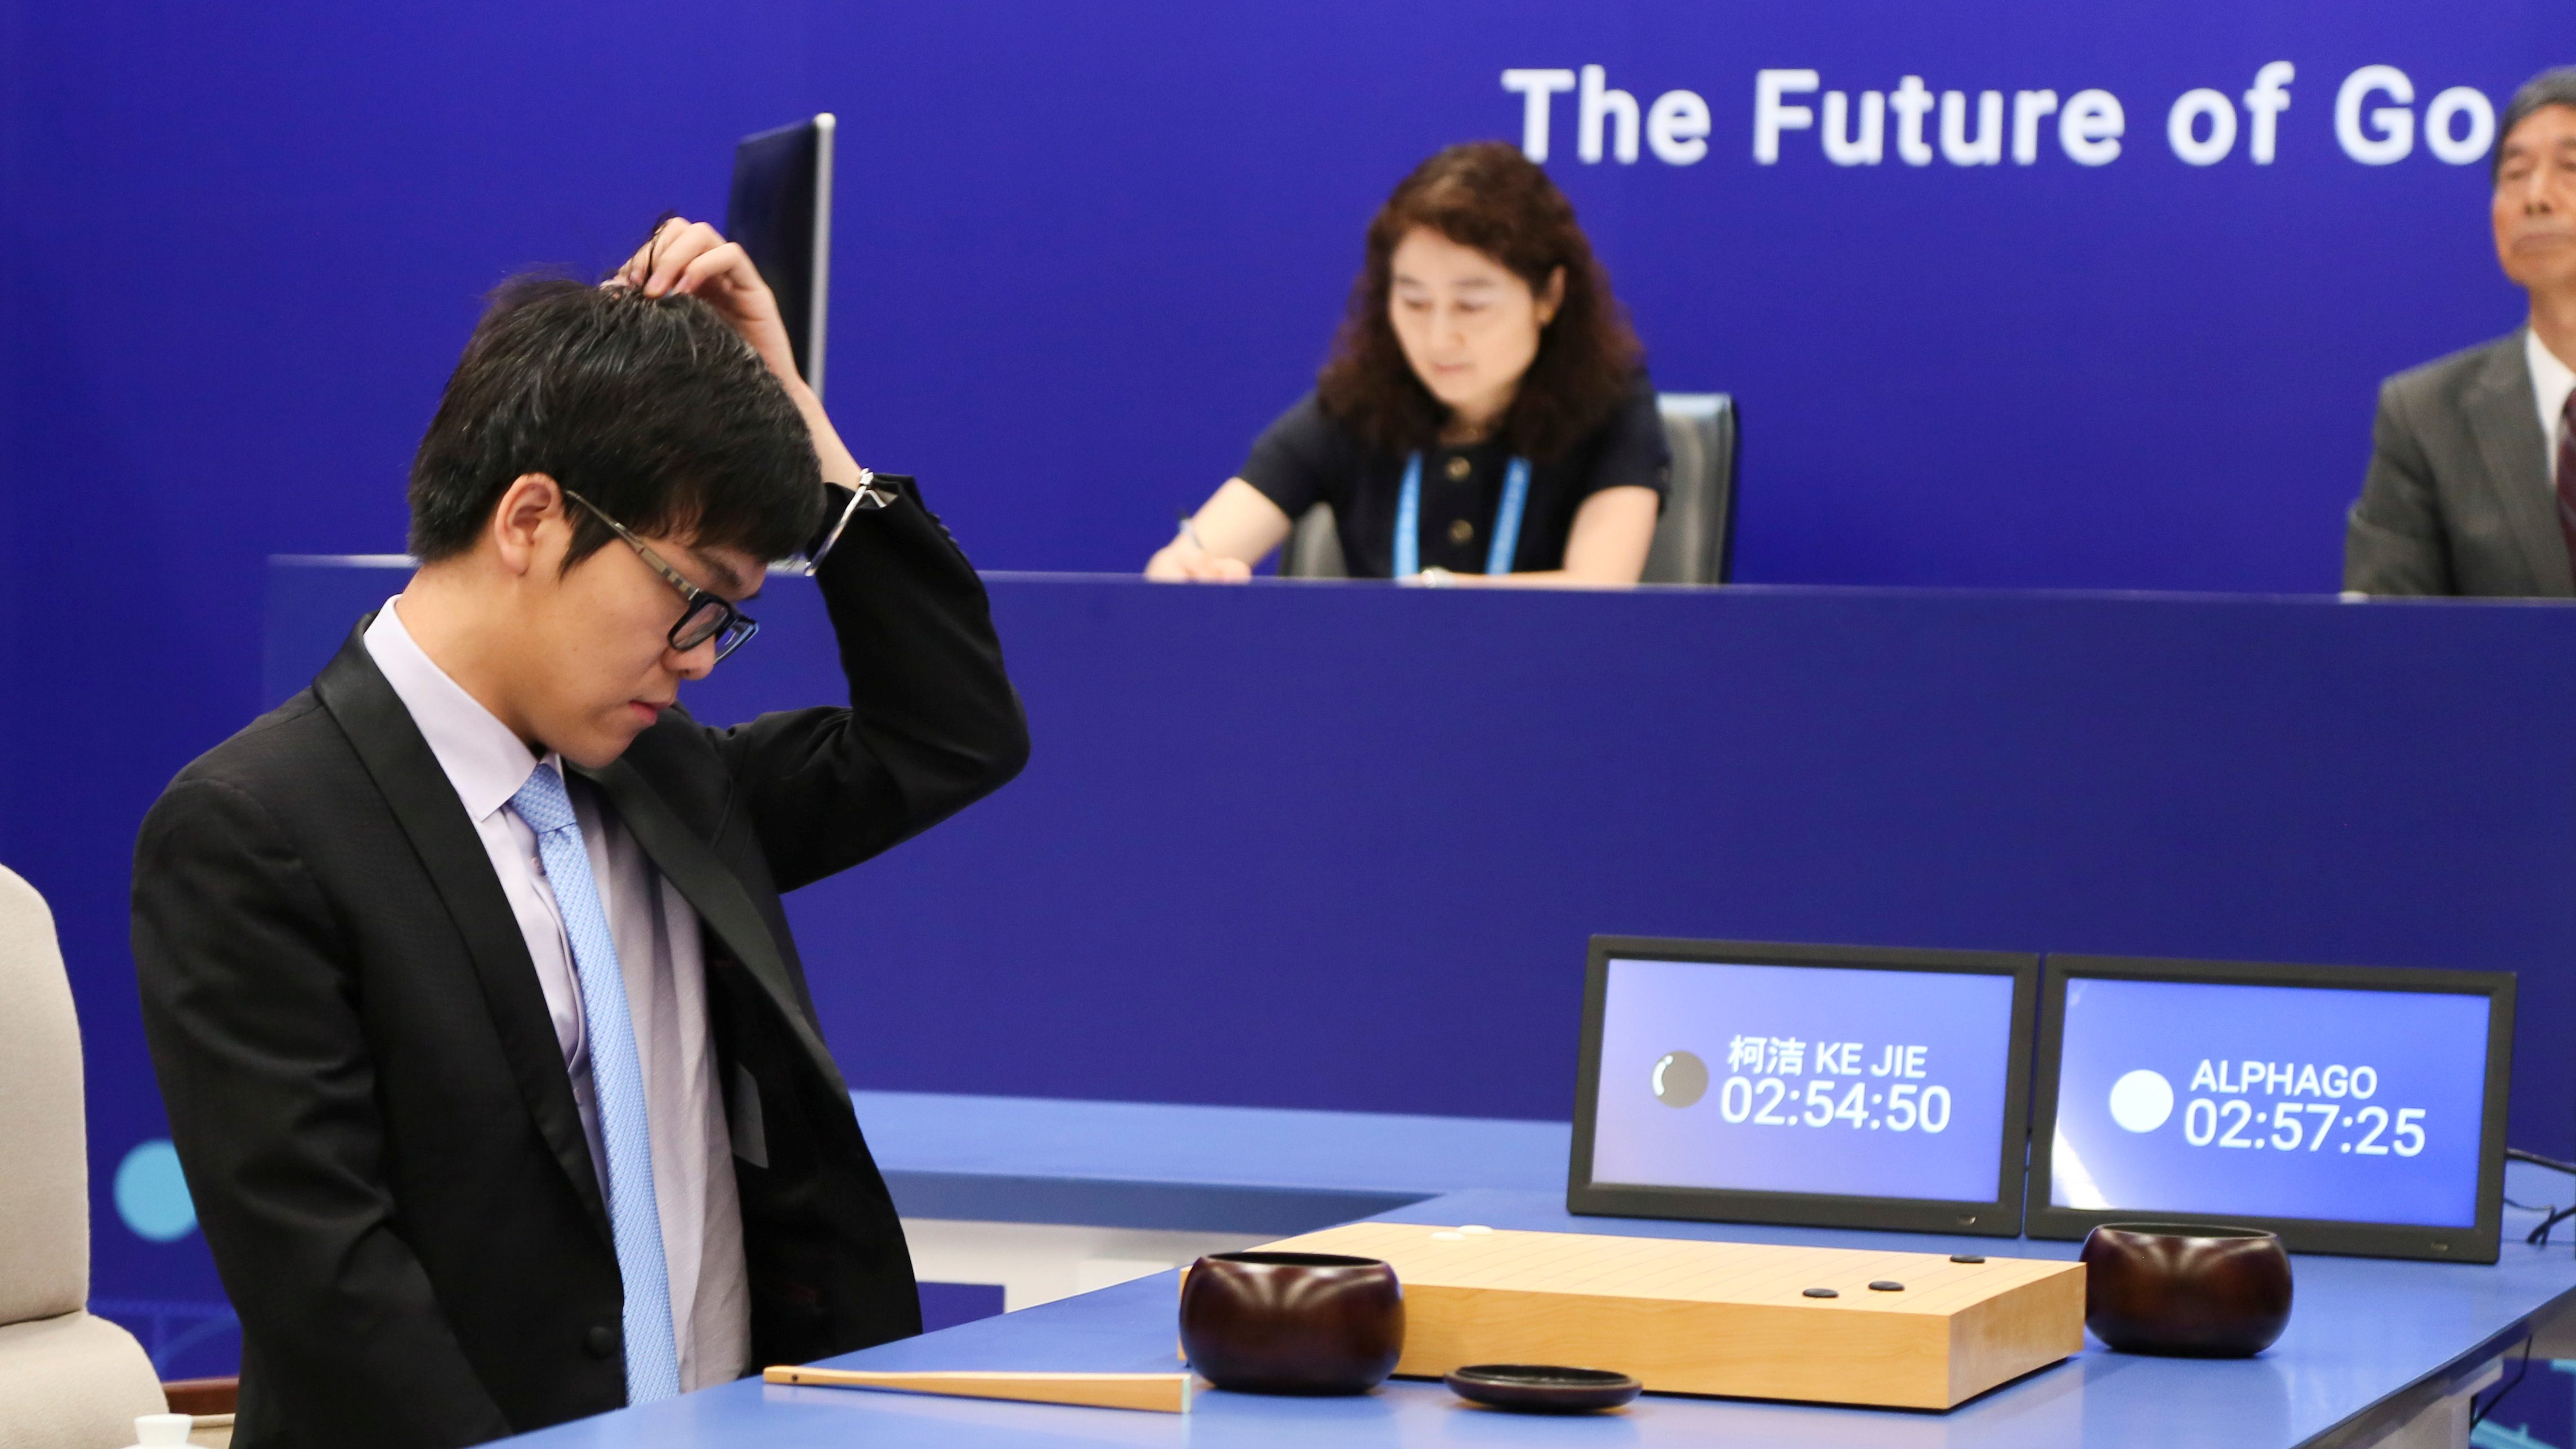 Chinese Go player Ke Jie reacts during his first match with Google's artificial intelligence program AlphaGo at the Future of Go Summit in Wuzhen, Zhejiang province, China May 23, 2017.